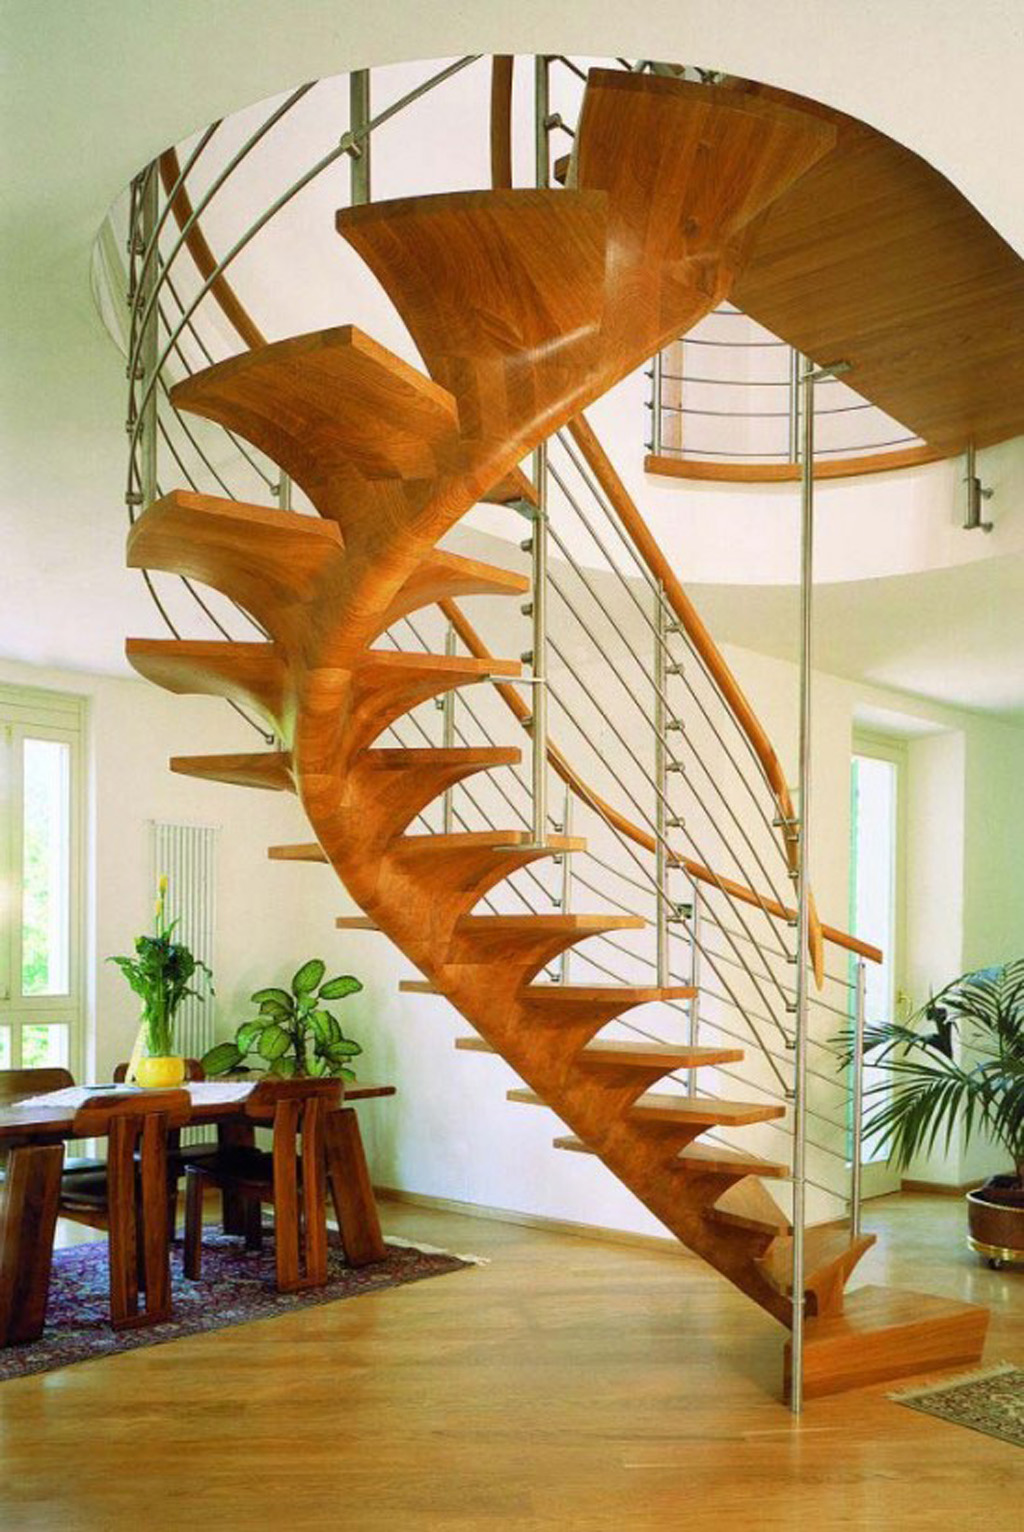 Modern Spiral Staircase Construction Idea with Wood and Glass ...